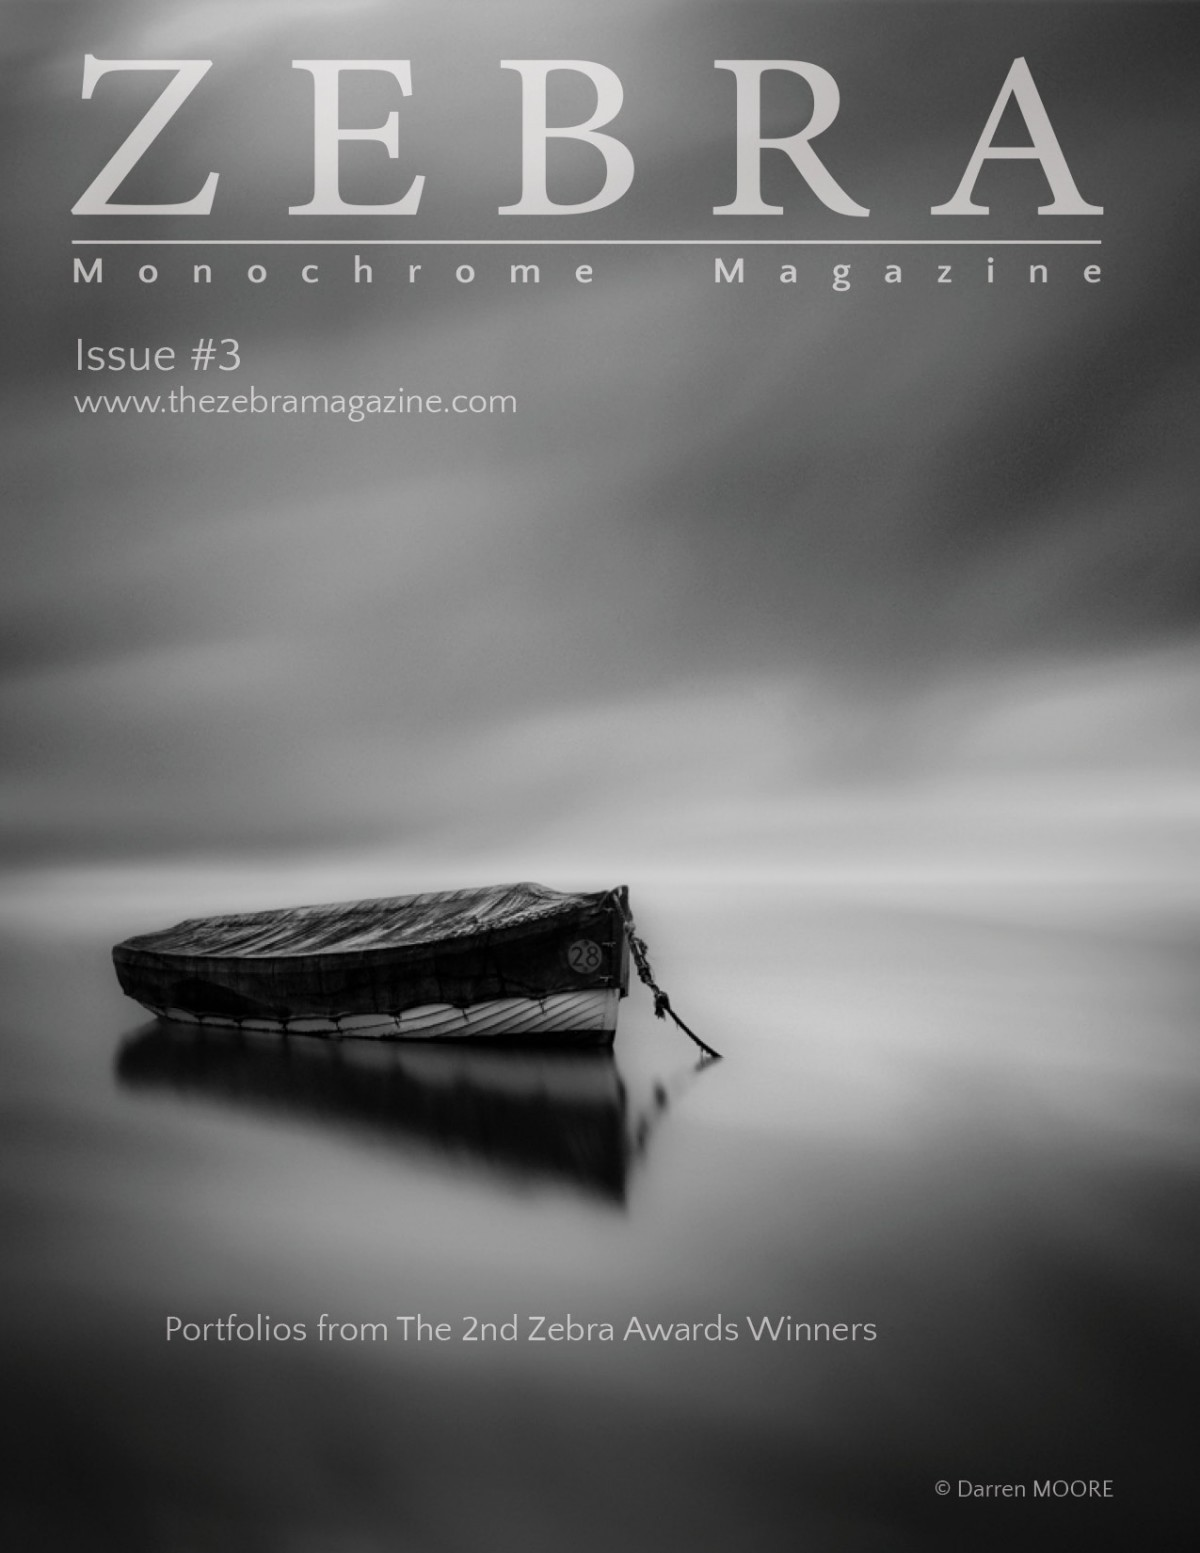 Zebra Magazine Issue 3 - Portfolios from The 2nd Zebra Awards Winners